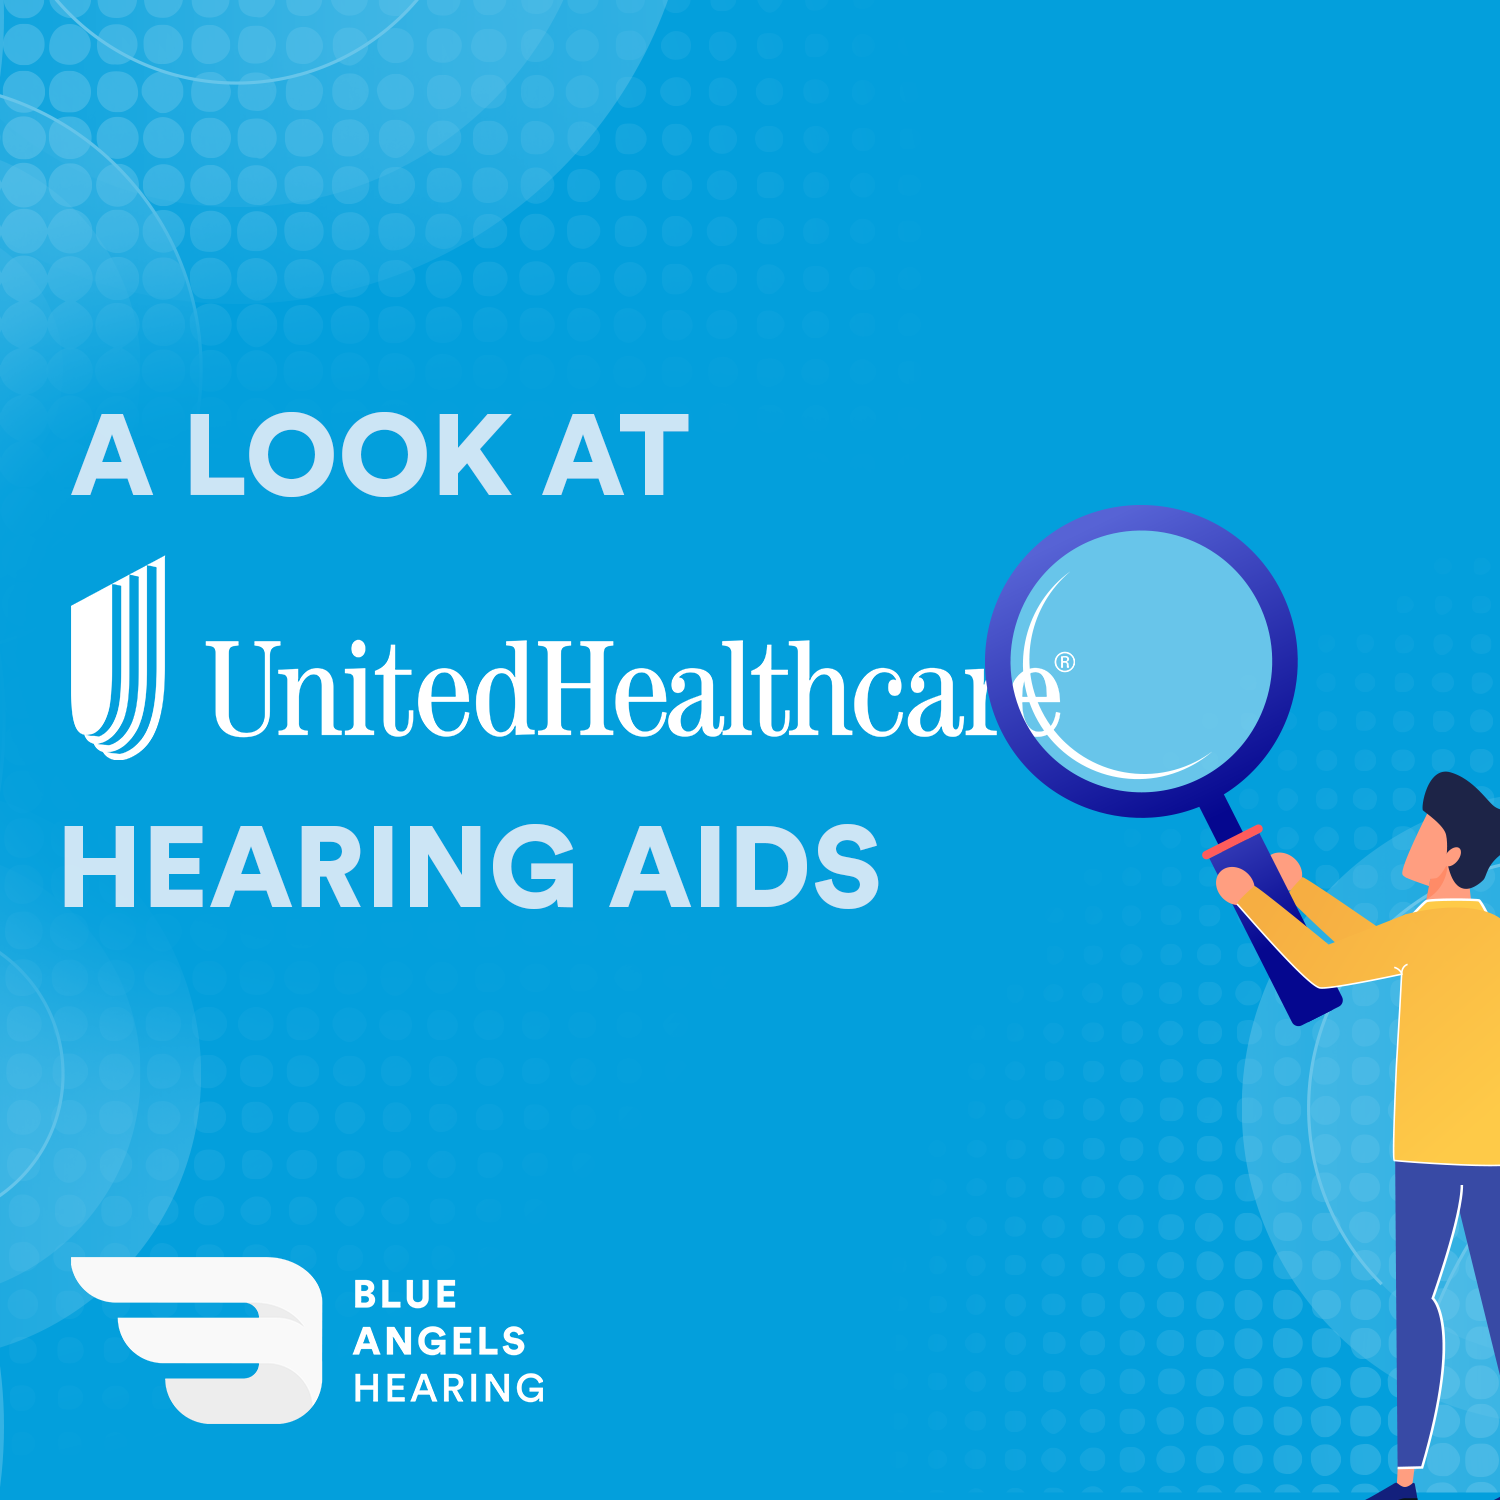 A Look At United Healthcare Hearing Aids